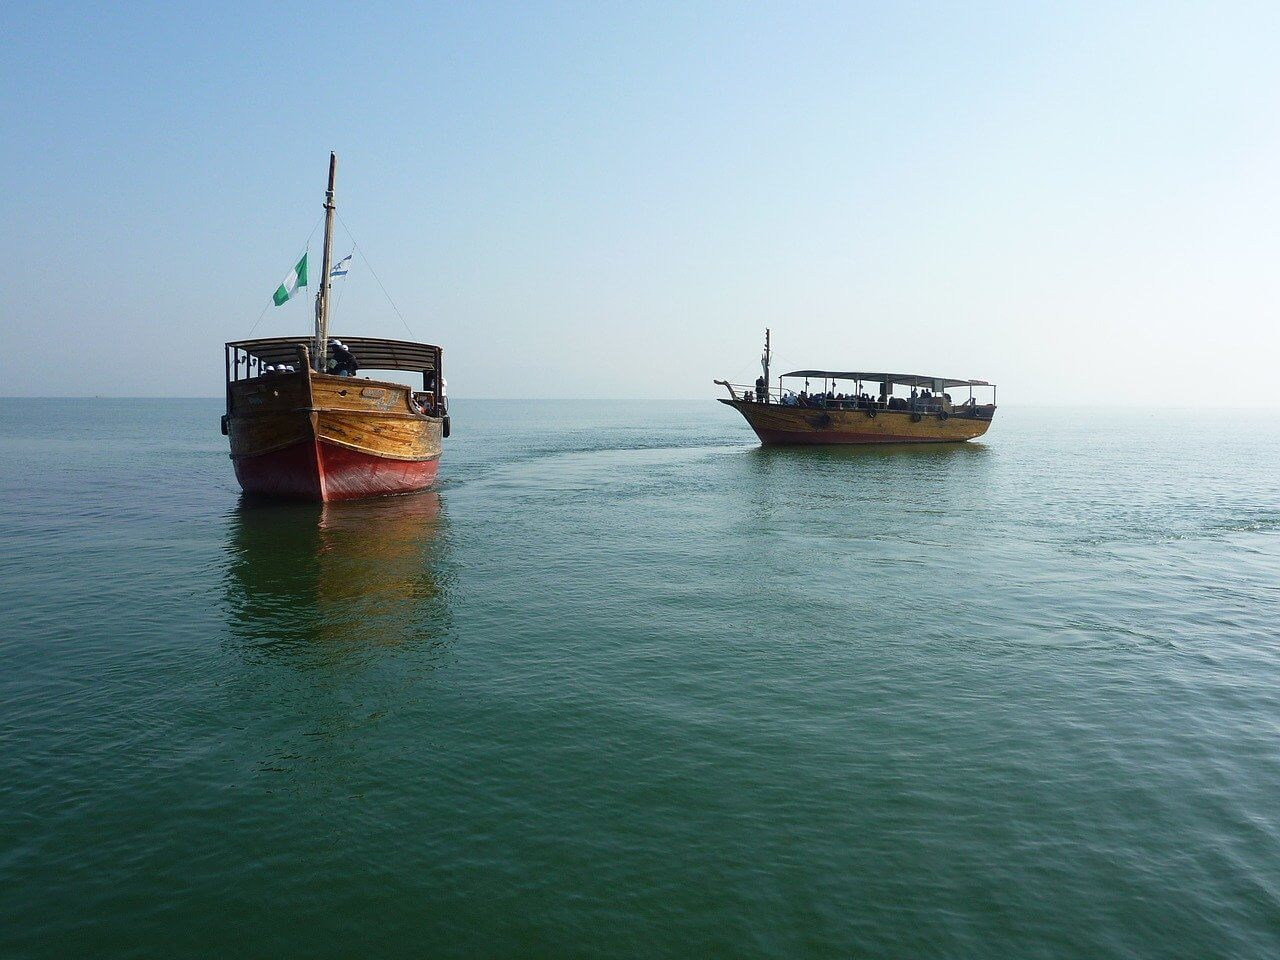 Sea of Galilee - a must visit place in Israel